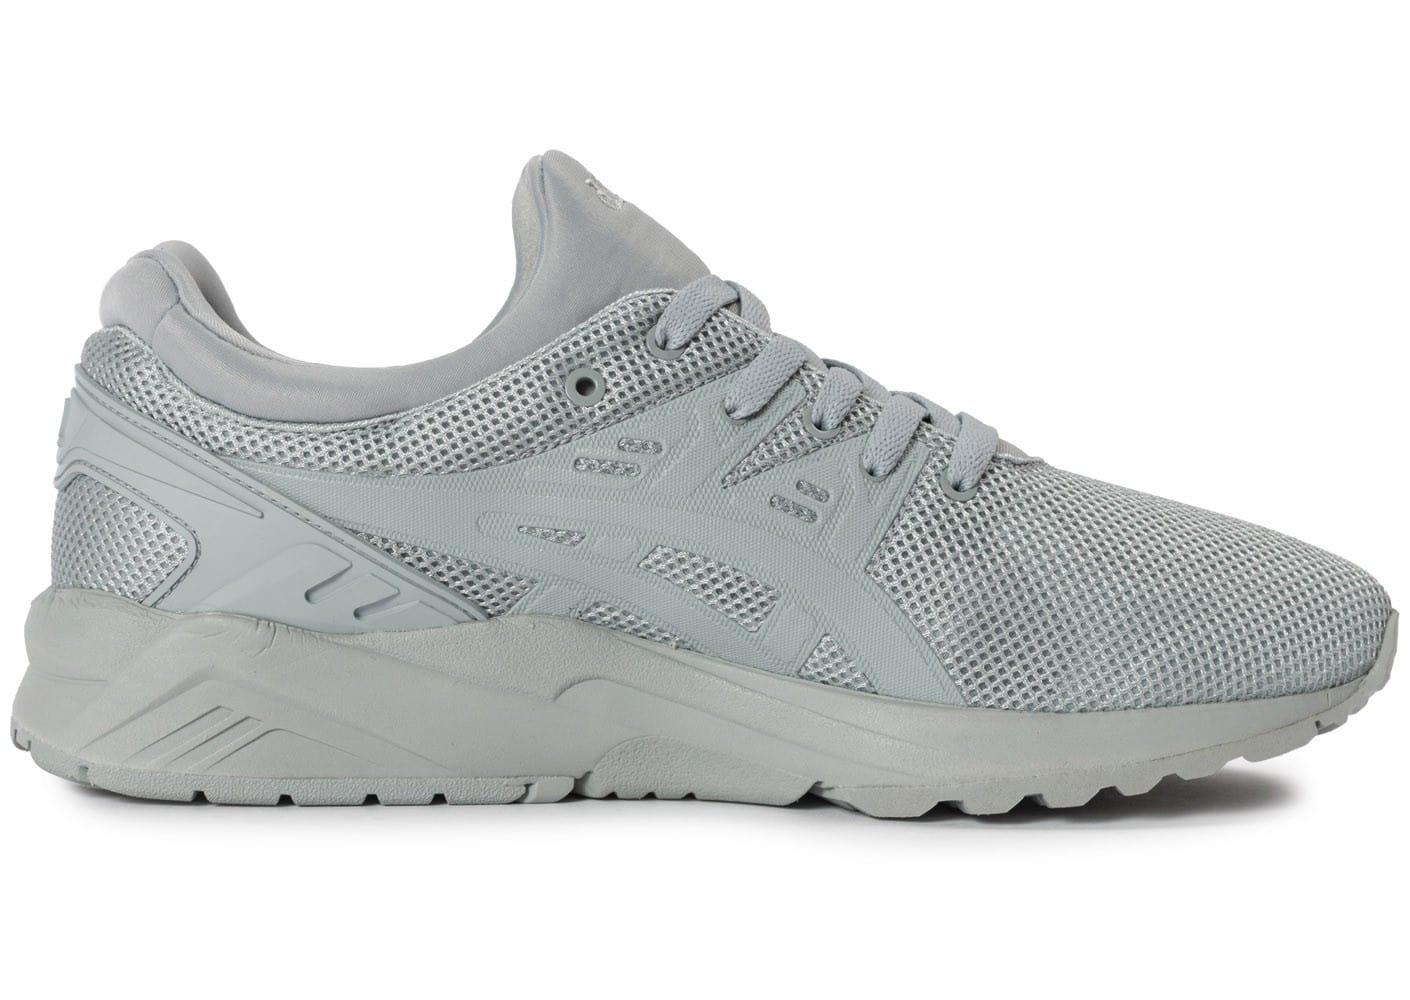 Chaussures Baskets Asics Evo Gel Trainer Homme Grise Kayano sQdrth